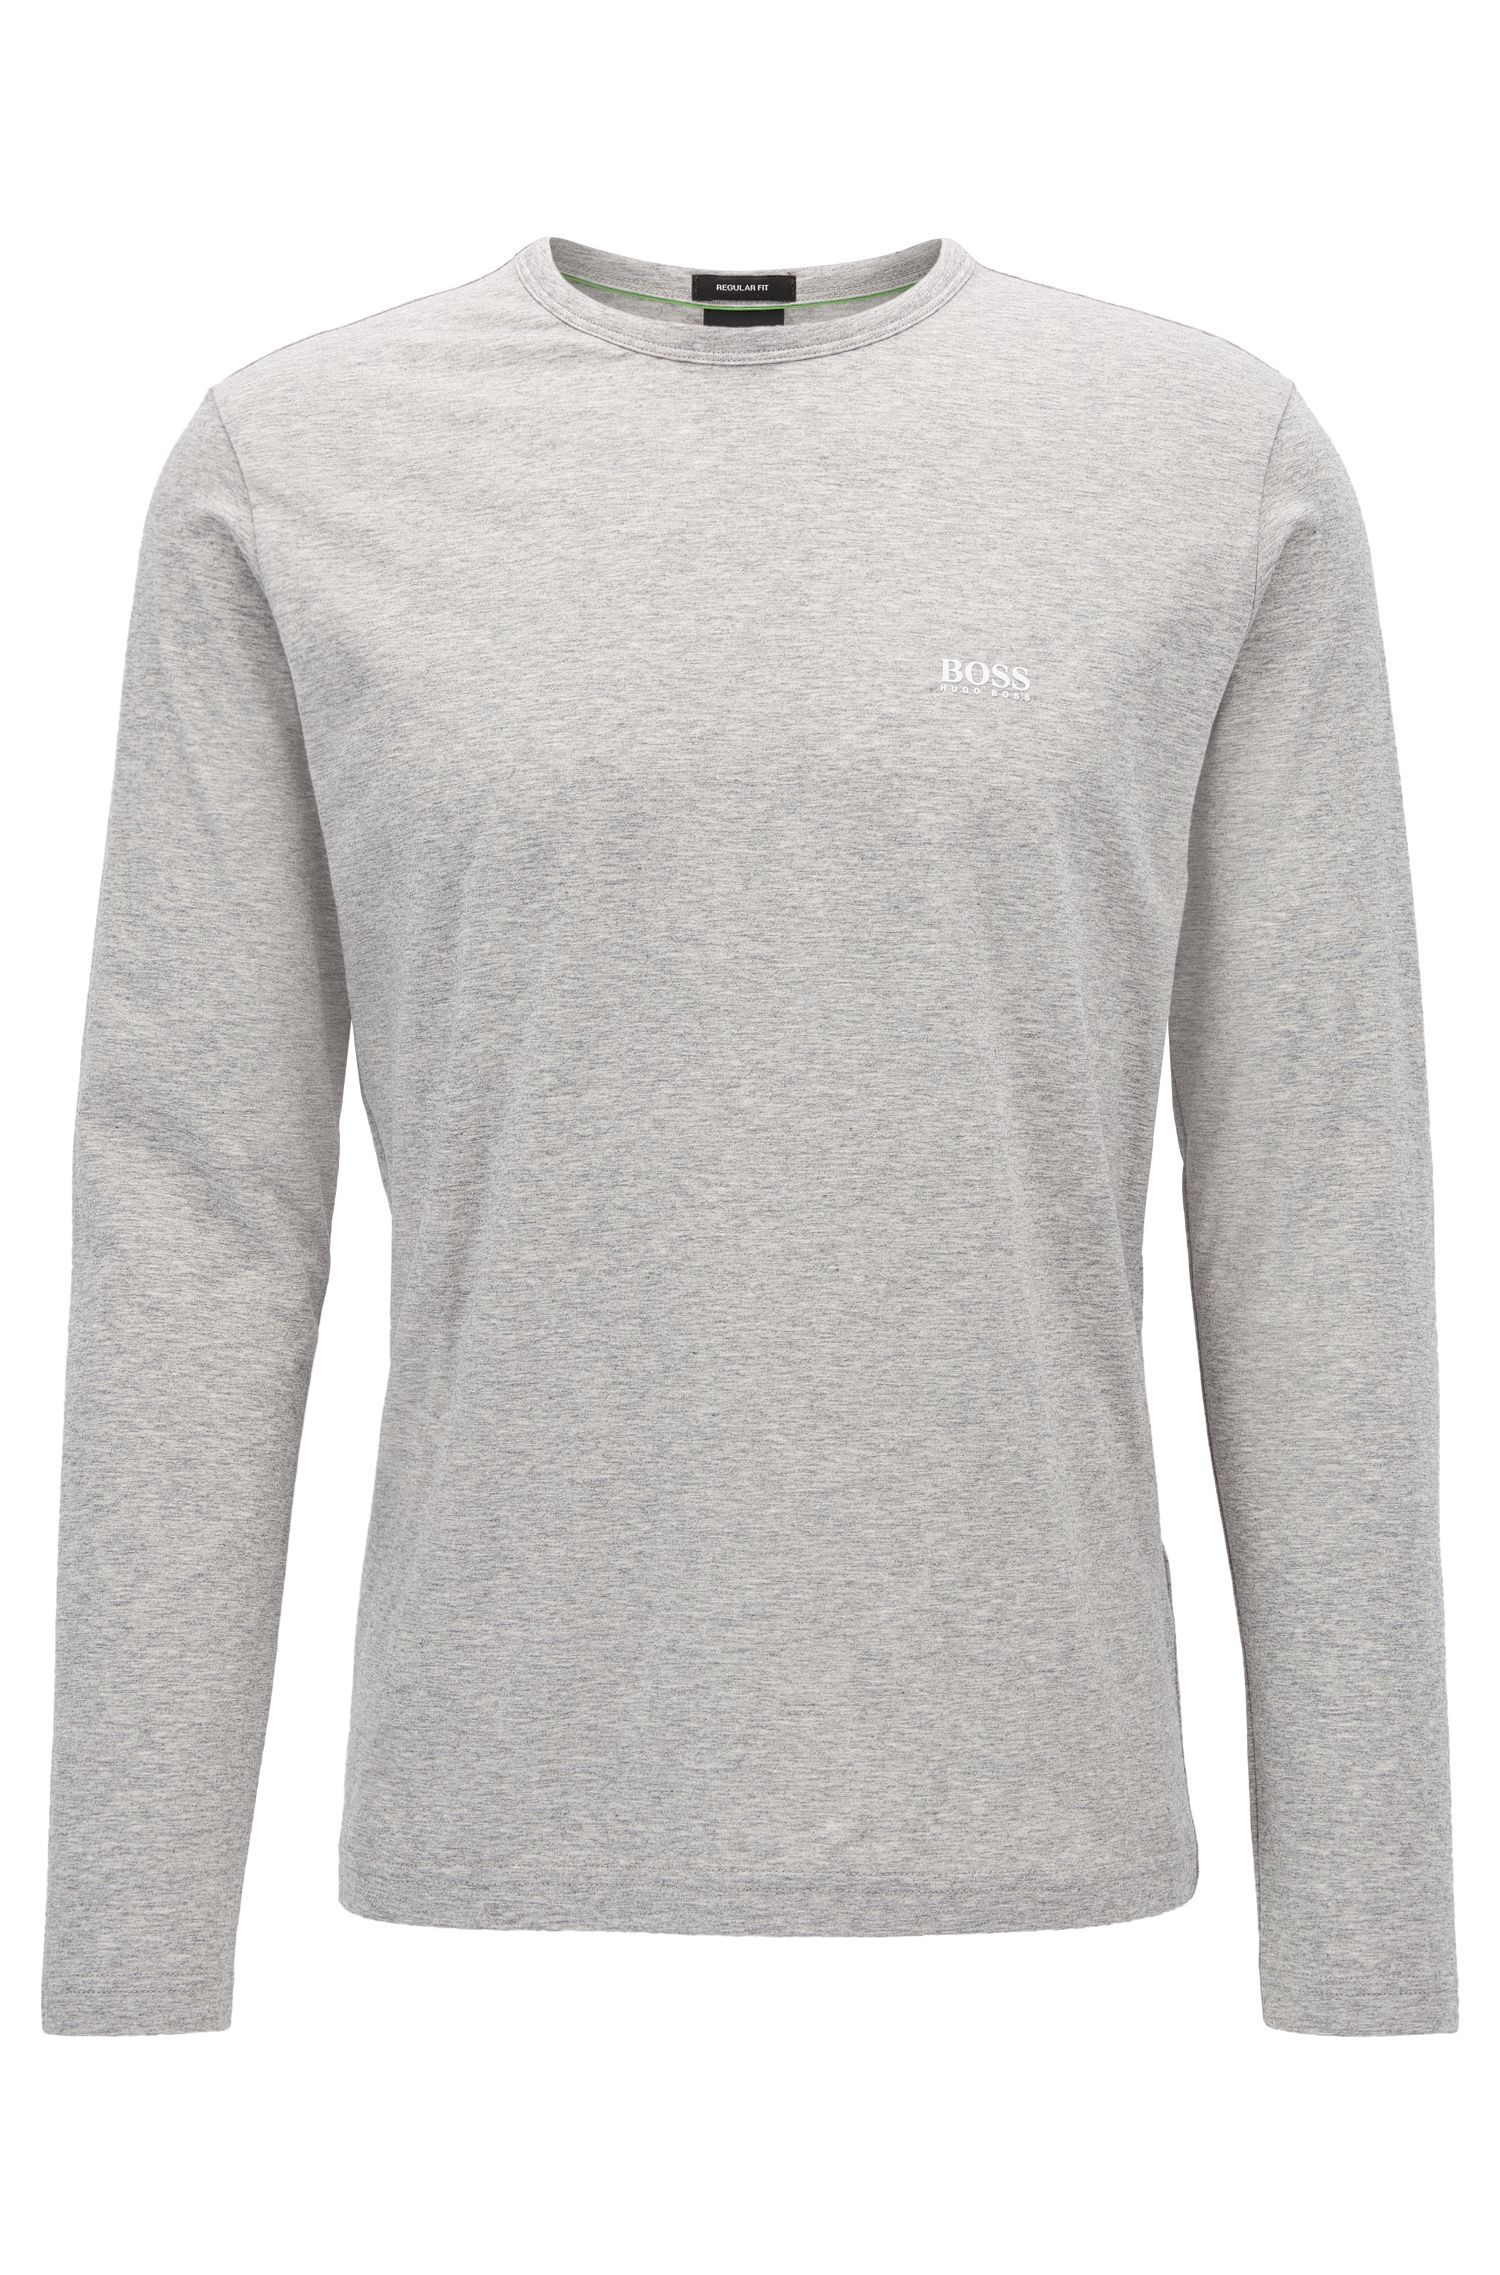 'Togn' long sleeve in cotton